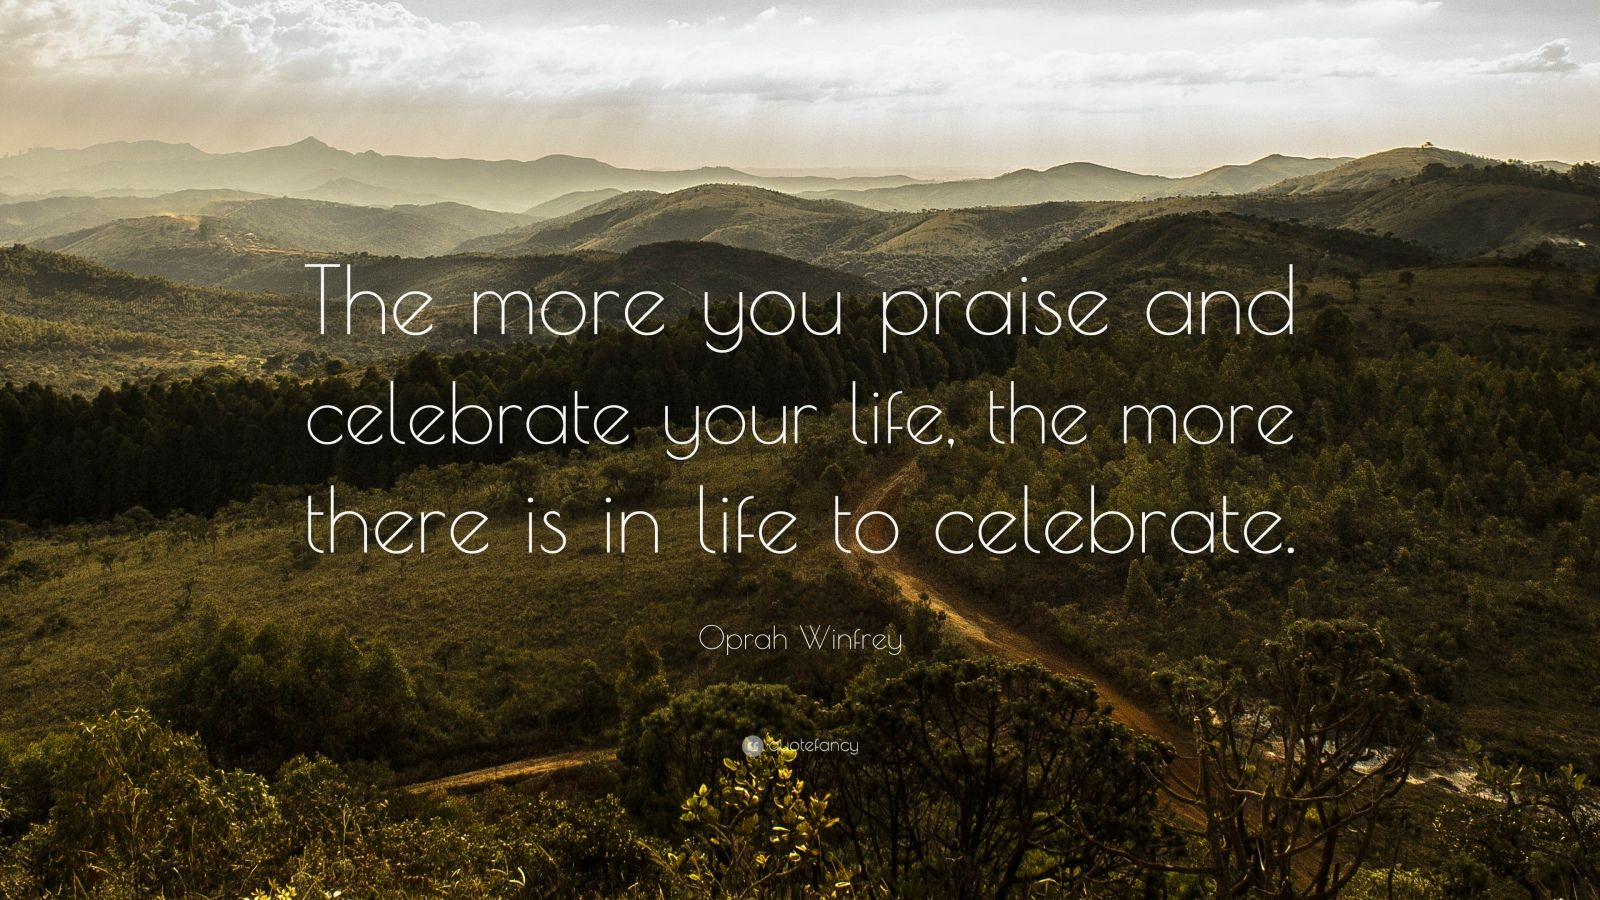 """Oprah Winfrey Quote: """"The more you praise and celebrate your life, the more there is in life to celebrate."""""""